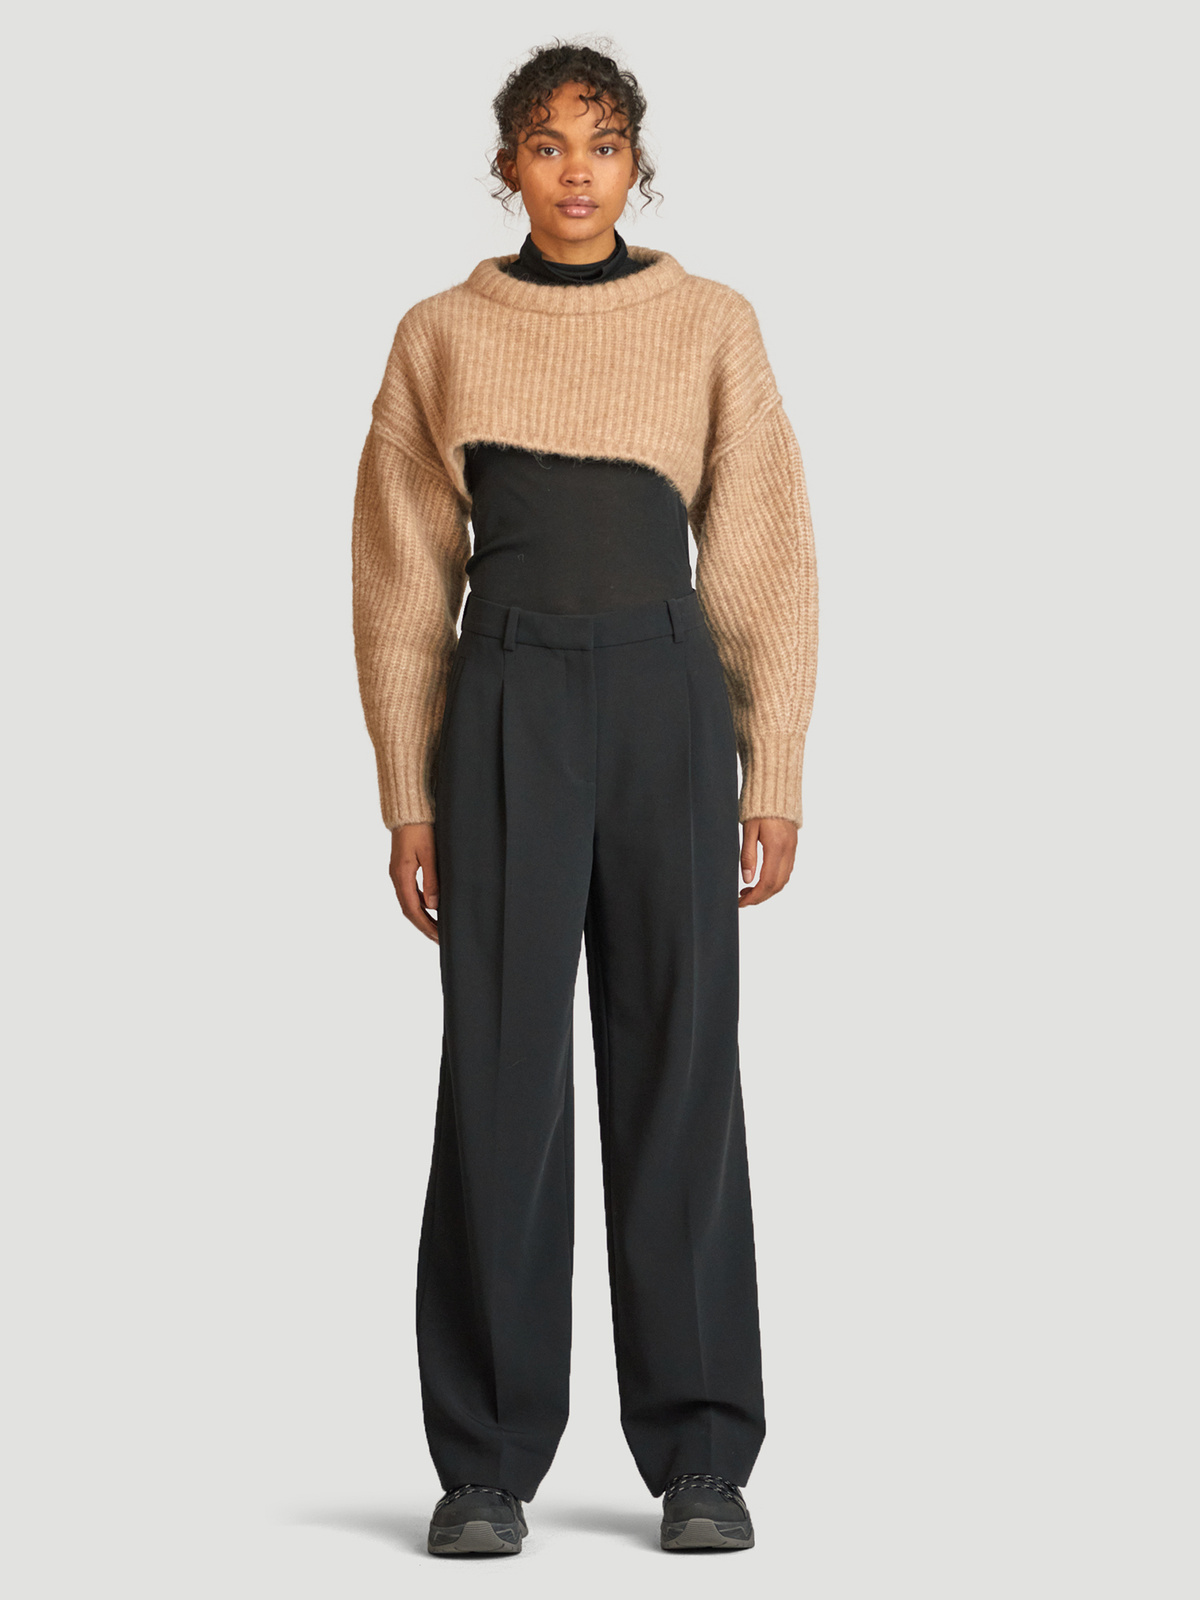 Bored Cropped Knit  Sand 6